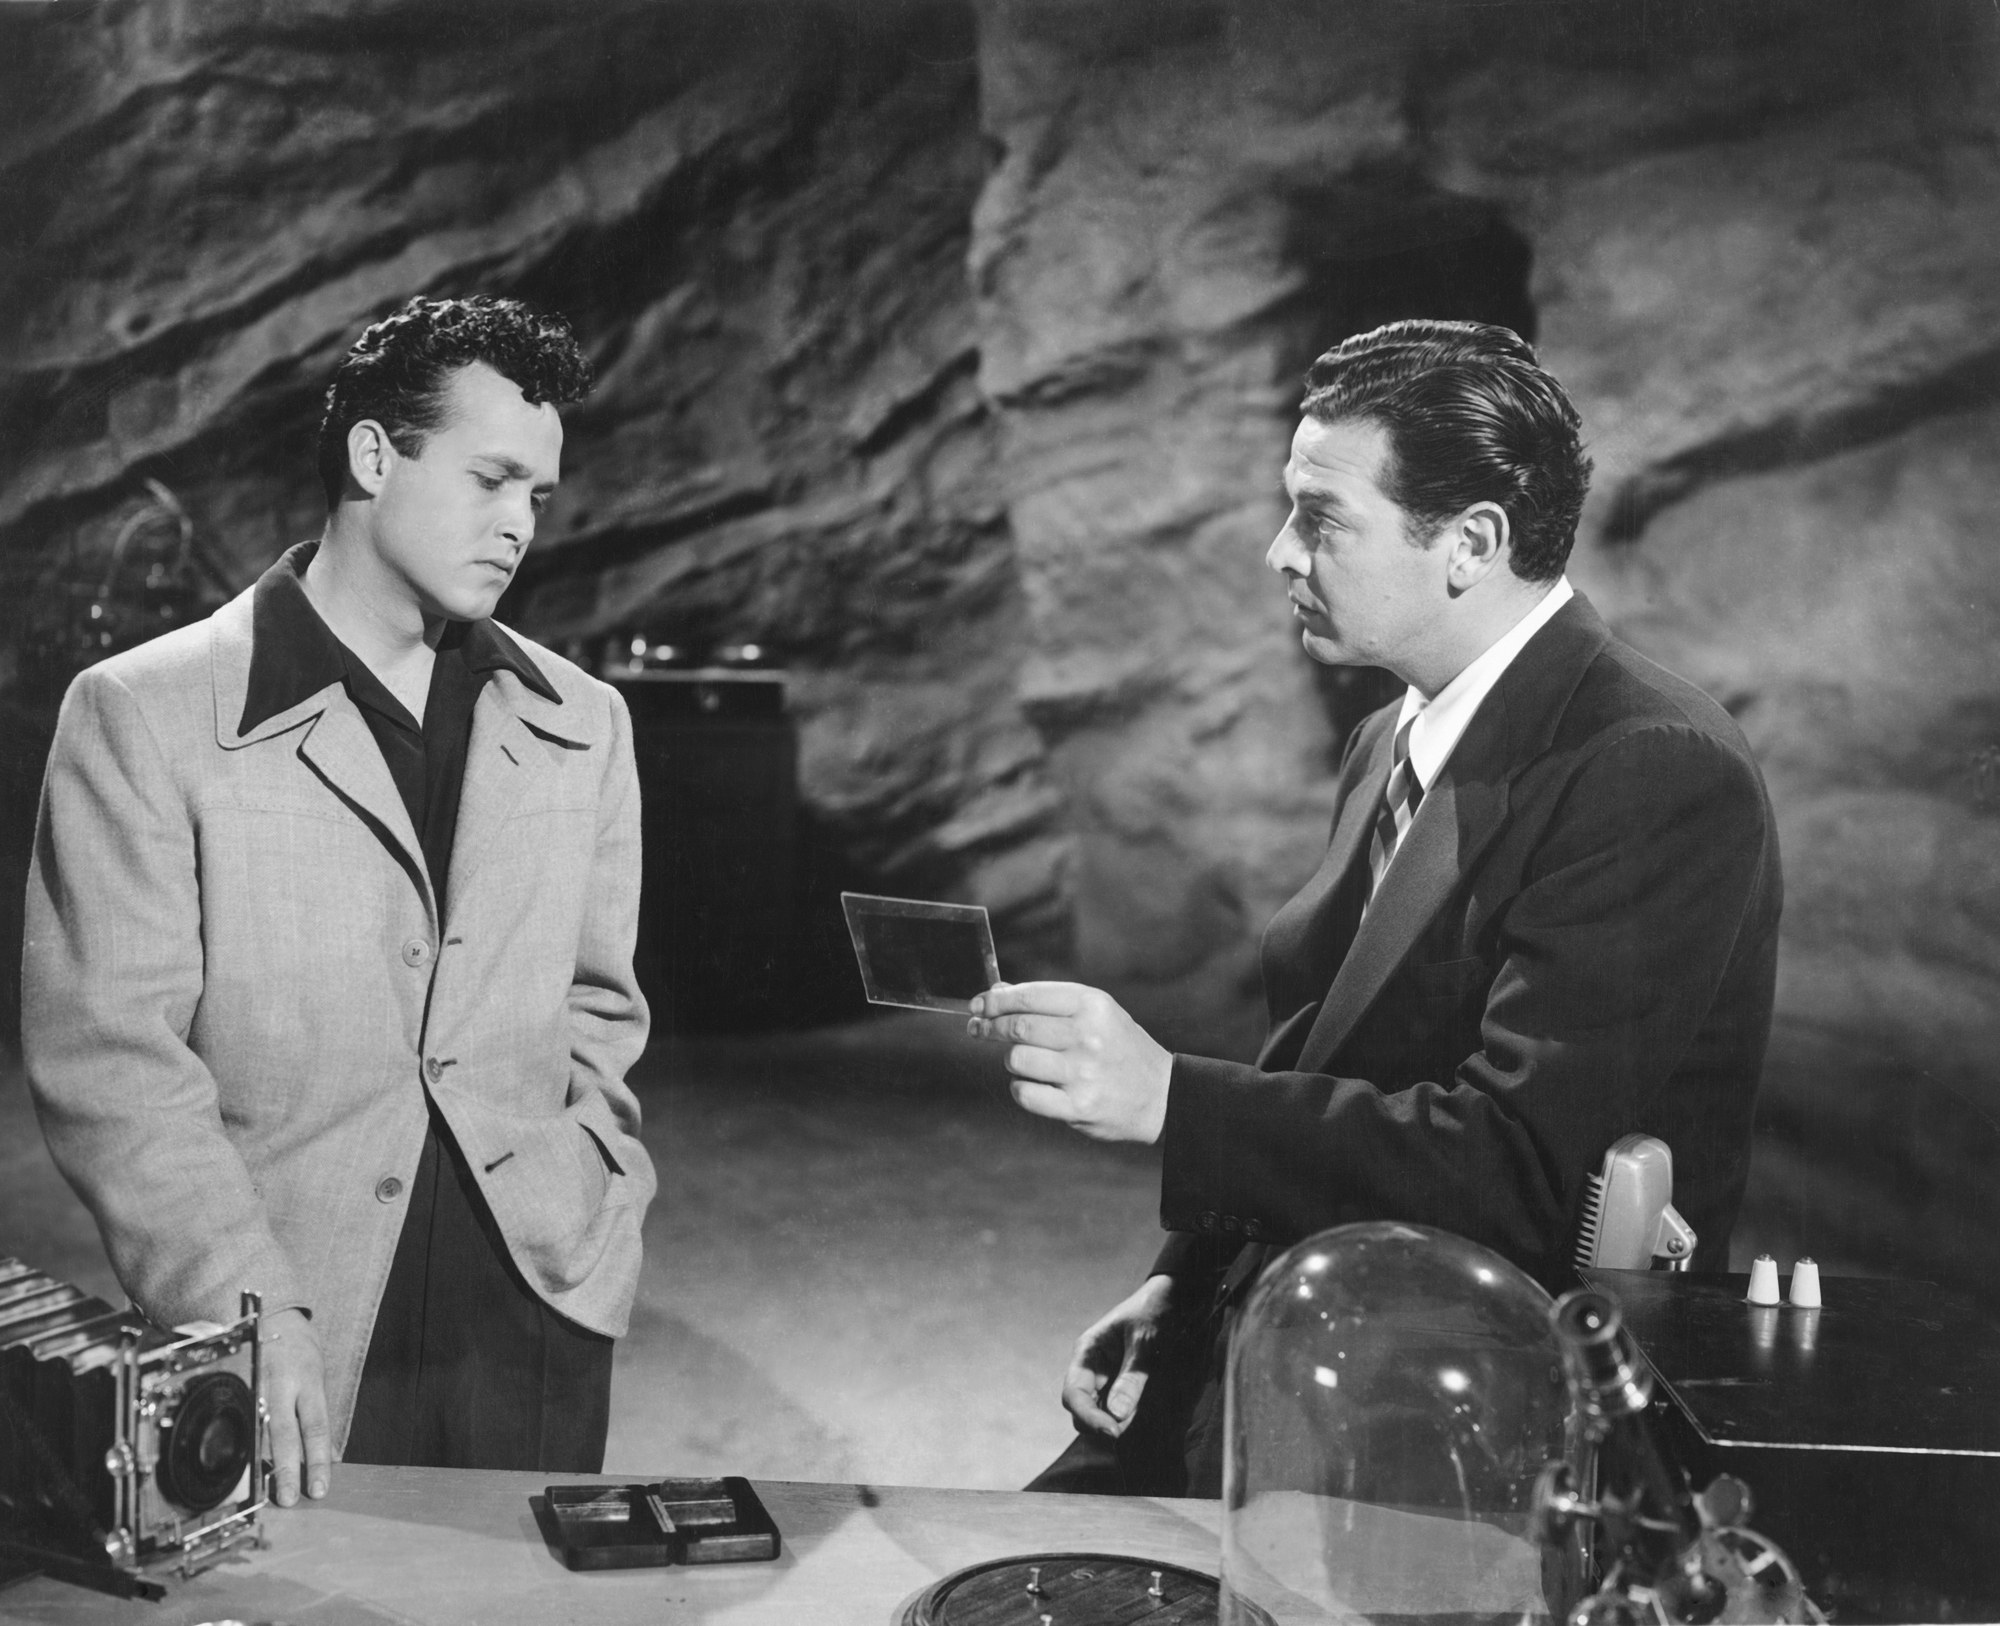 Dick Grayson (John Duncan) and Bruce Wayne (Robert Lowery) in the Batcave in Batman and Robin (1949)